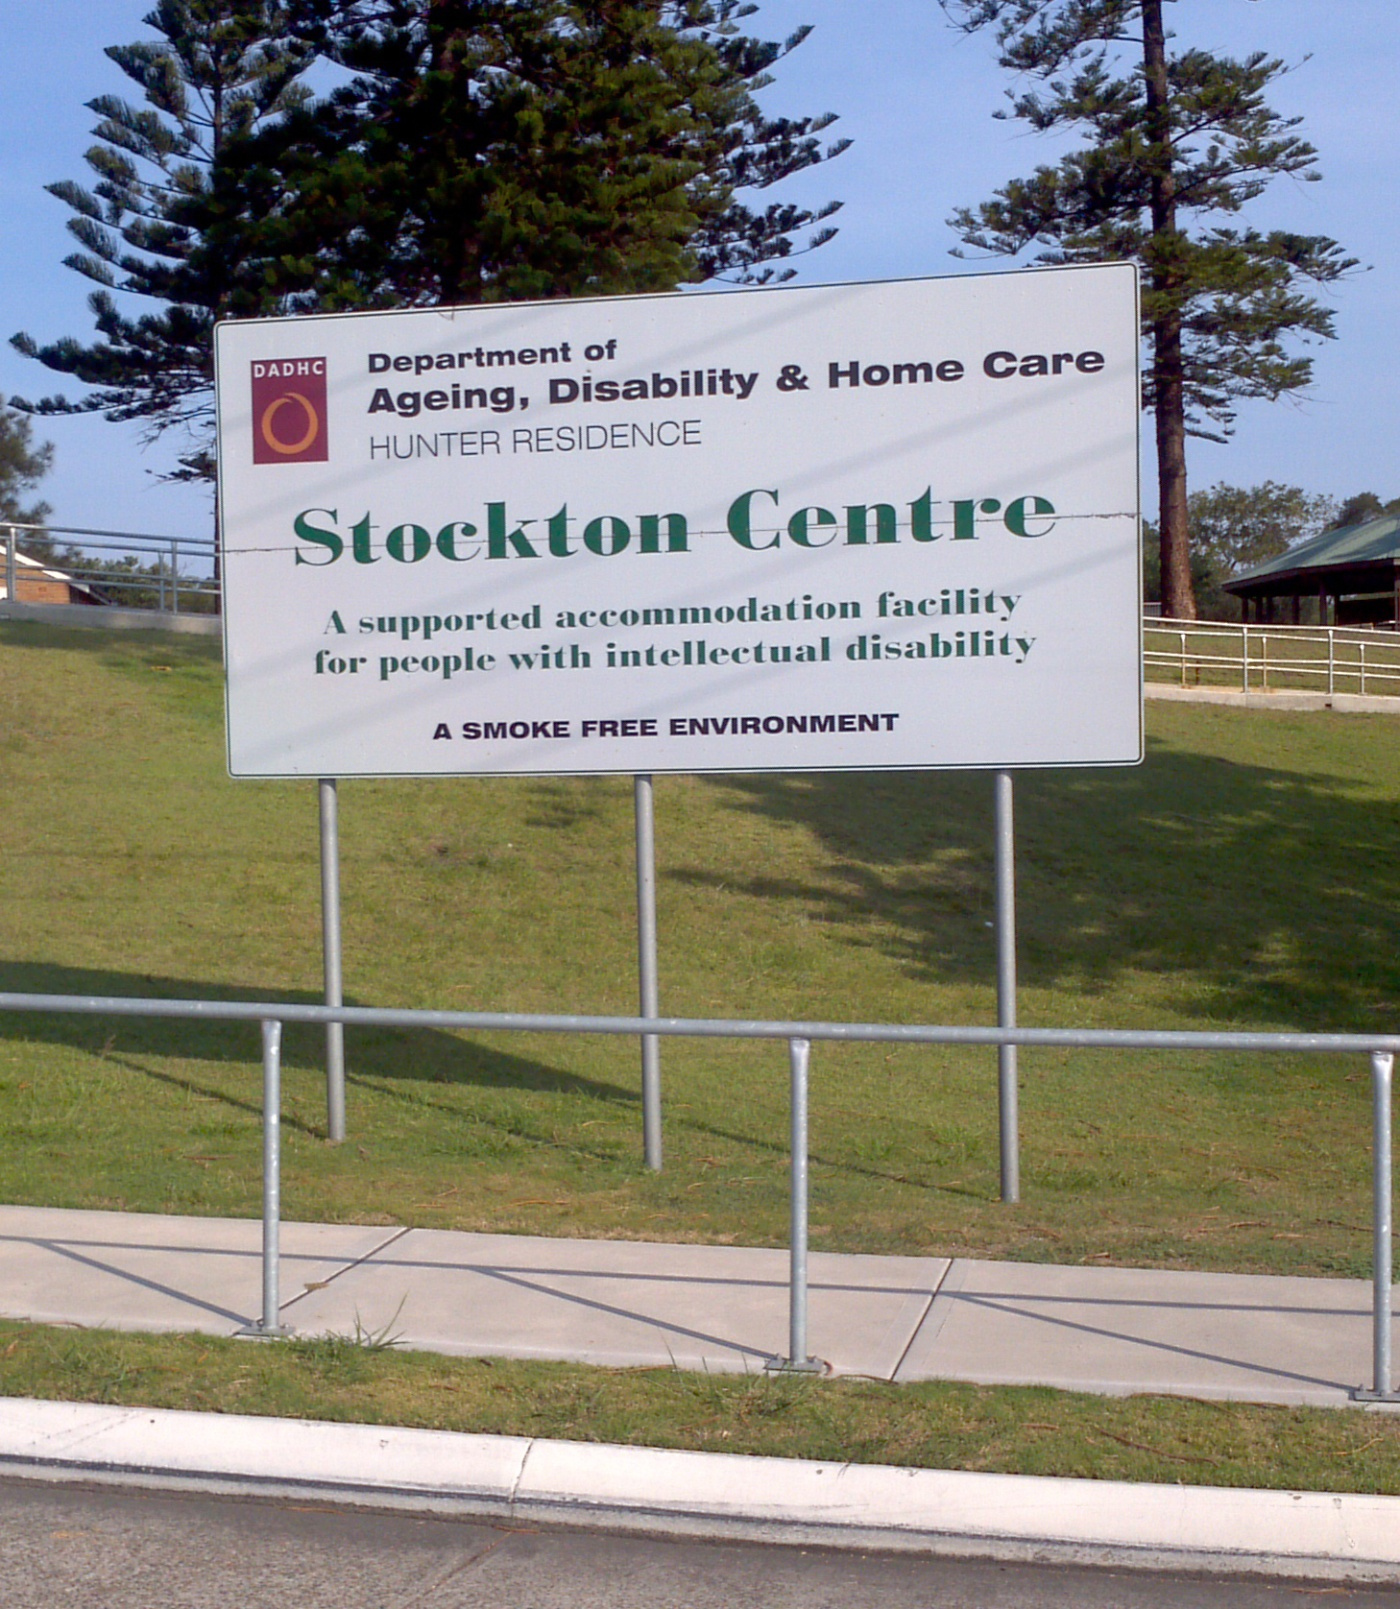 The Stockton Centre